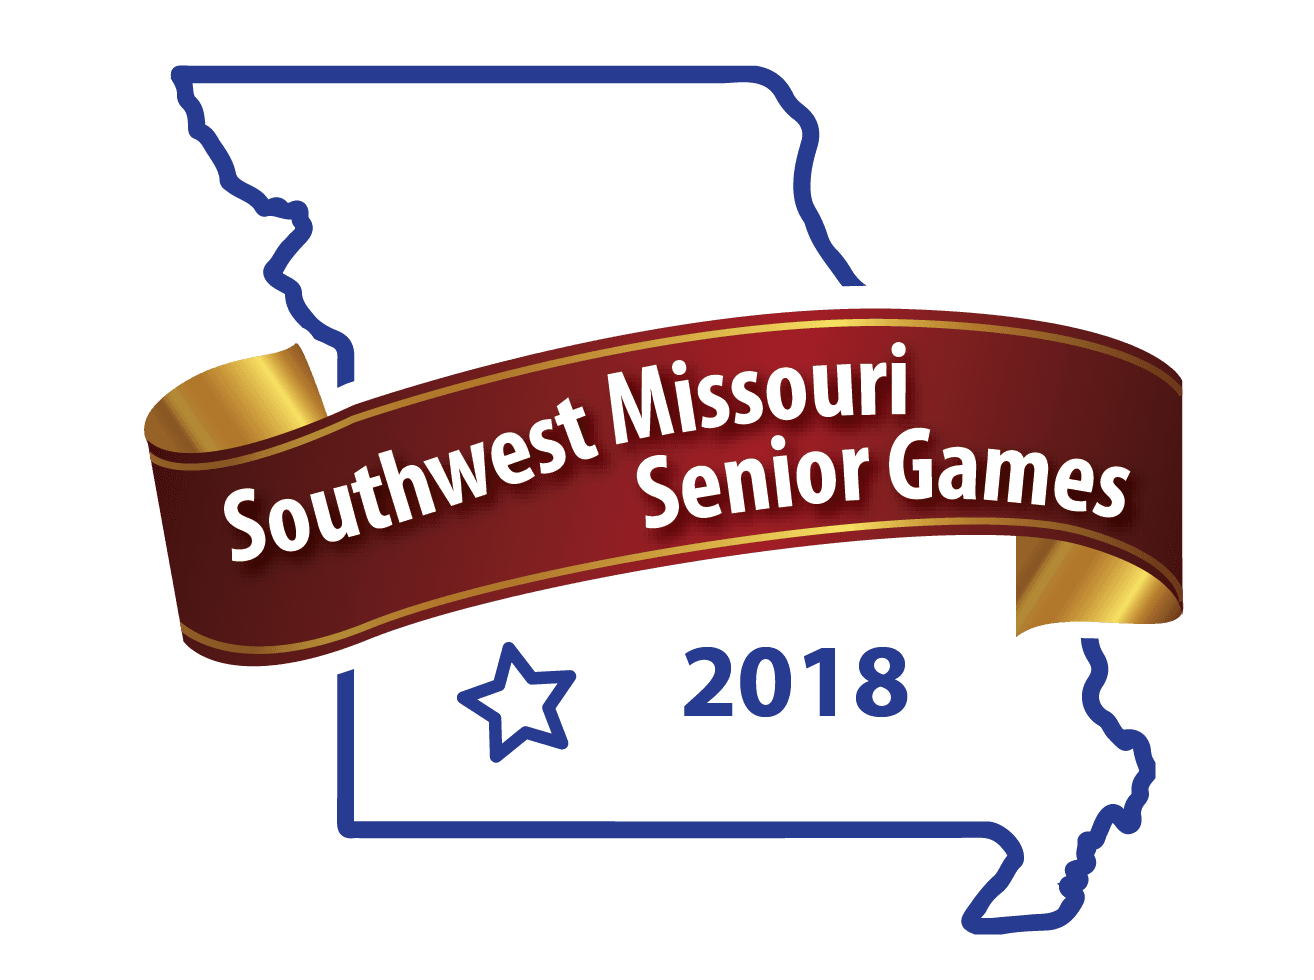 Southwest Missouri Senior Games